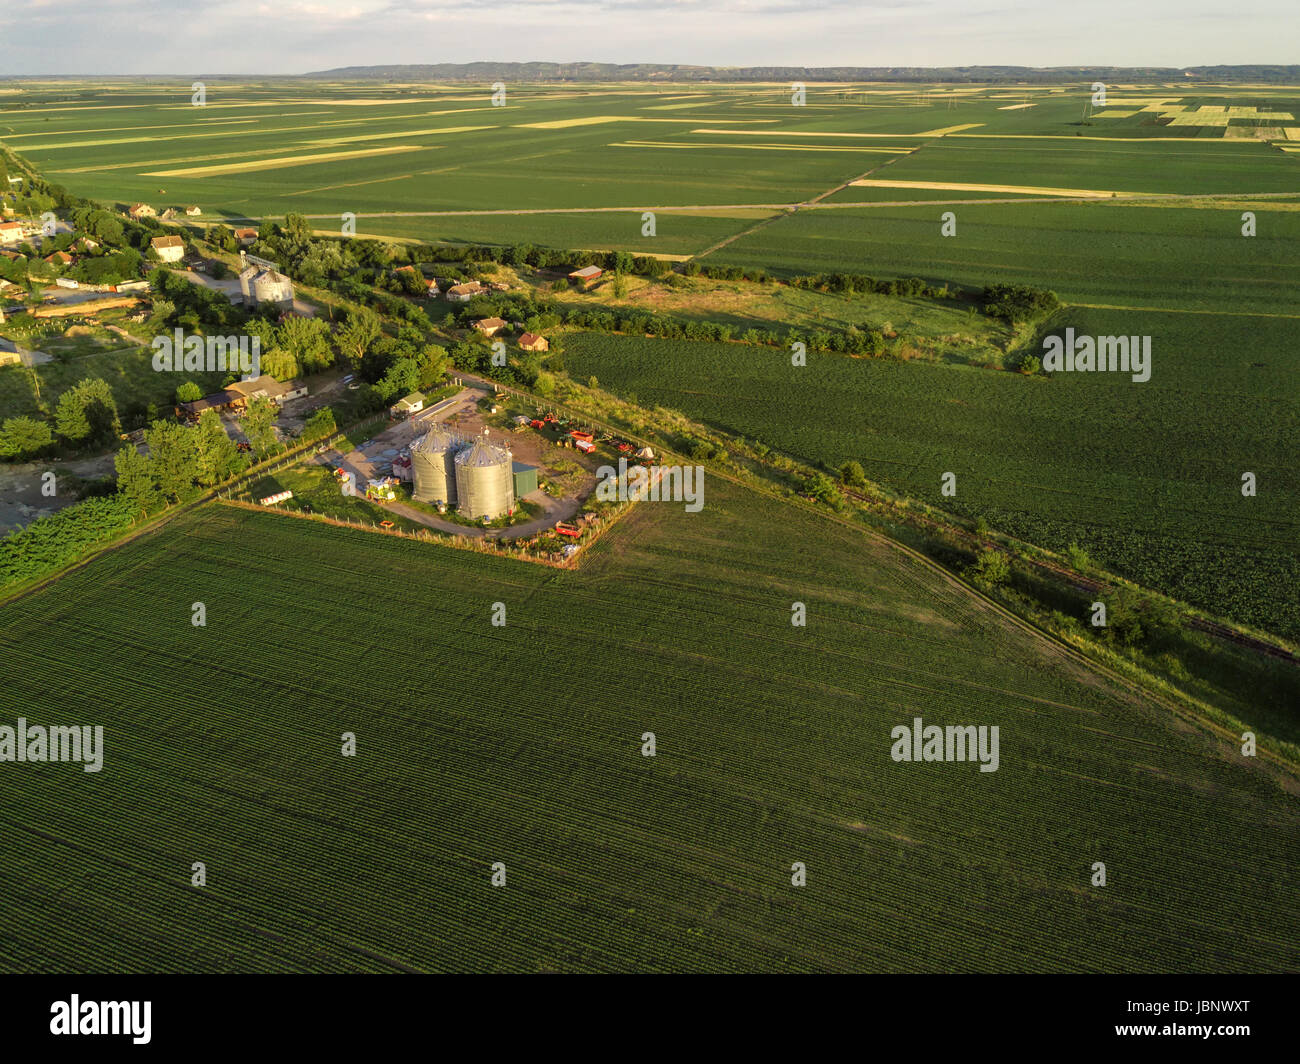 Aerial view of countryside landscape from drone pov - cultivated fields, silos and village in the distance - Stock Image